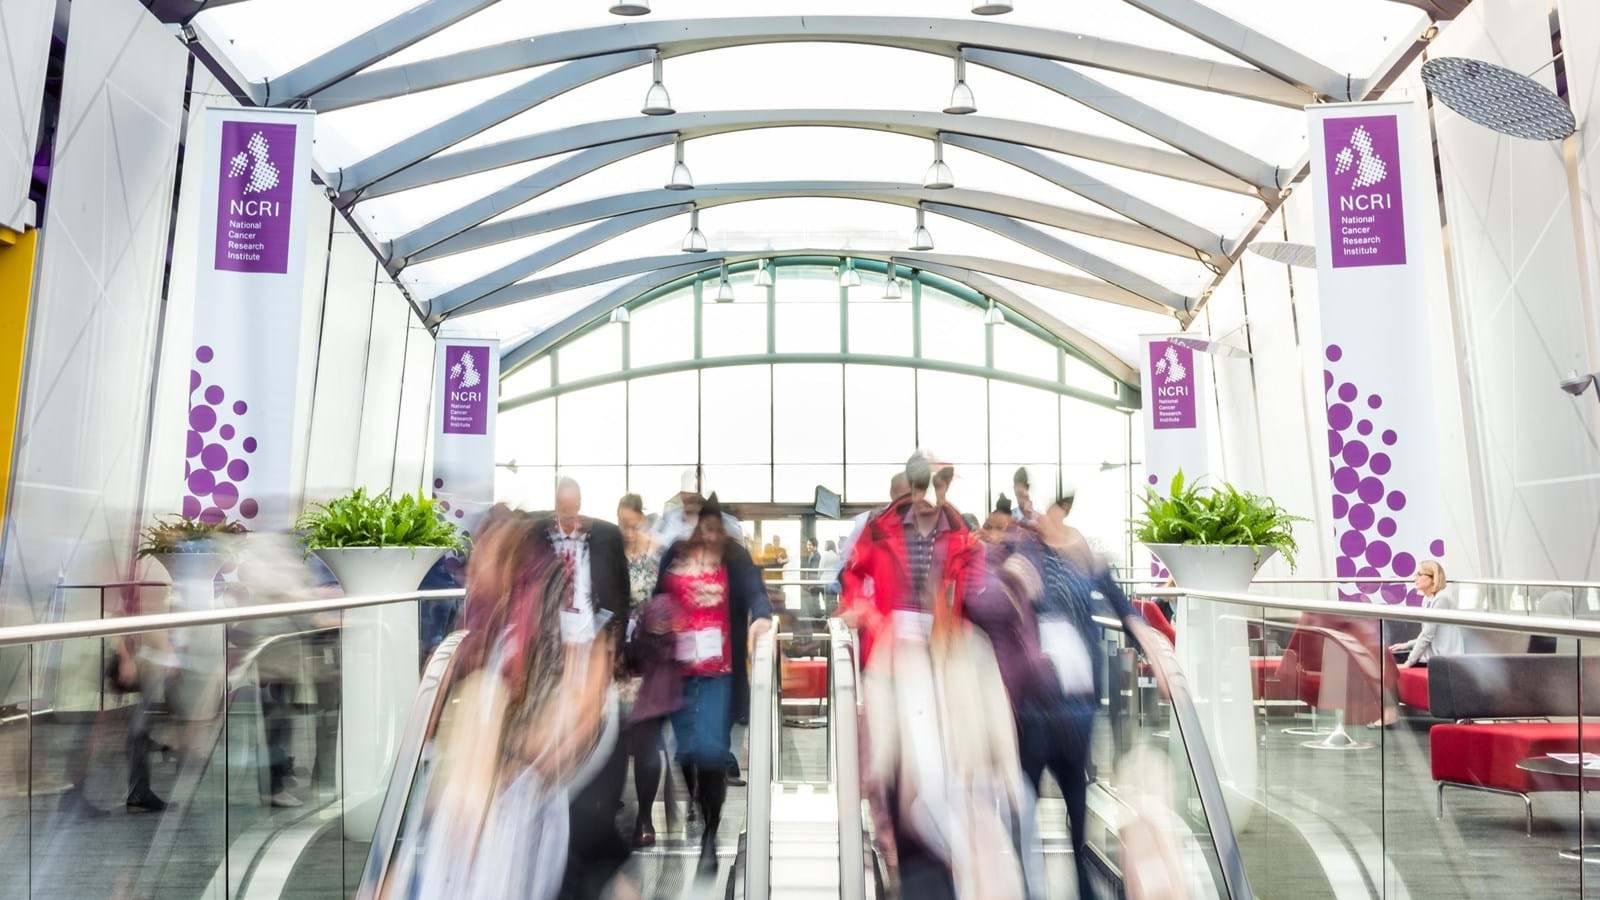 Blurred image of delegates travelling down escalators during the NCRI conference